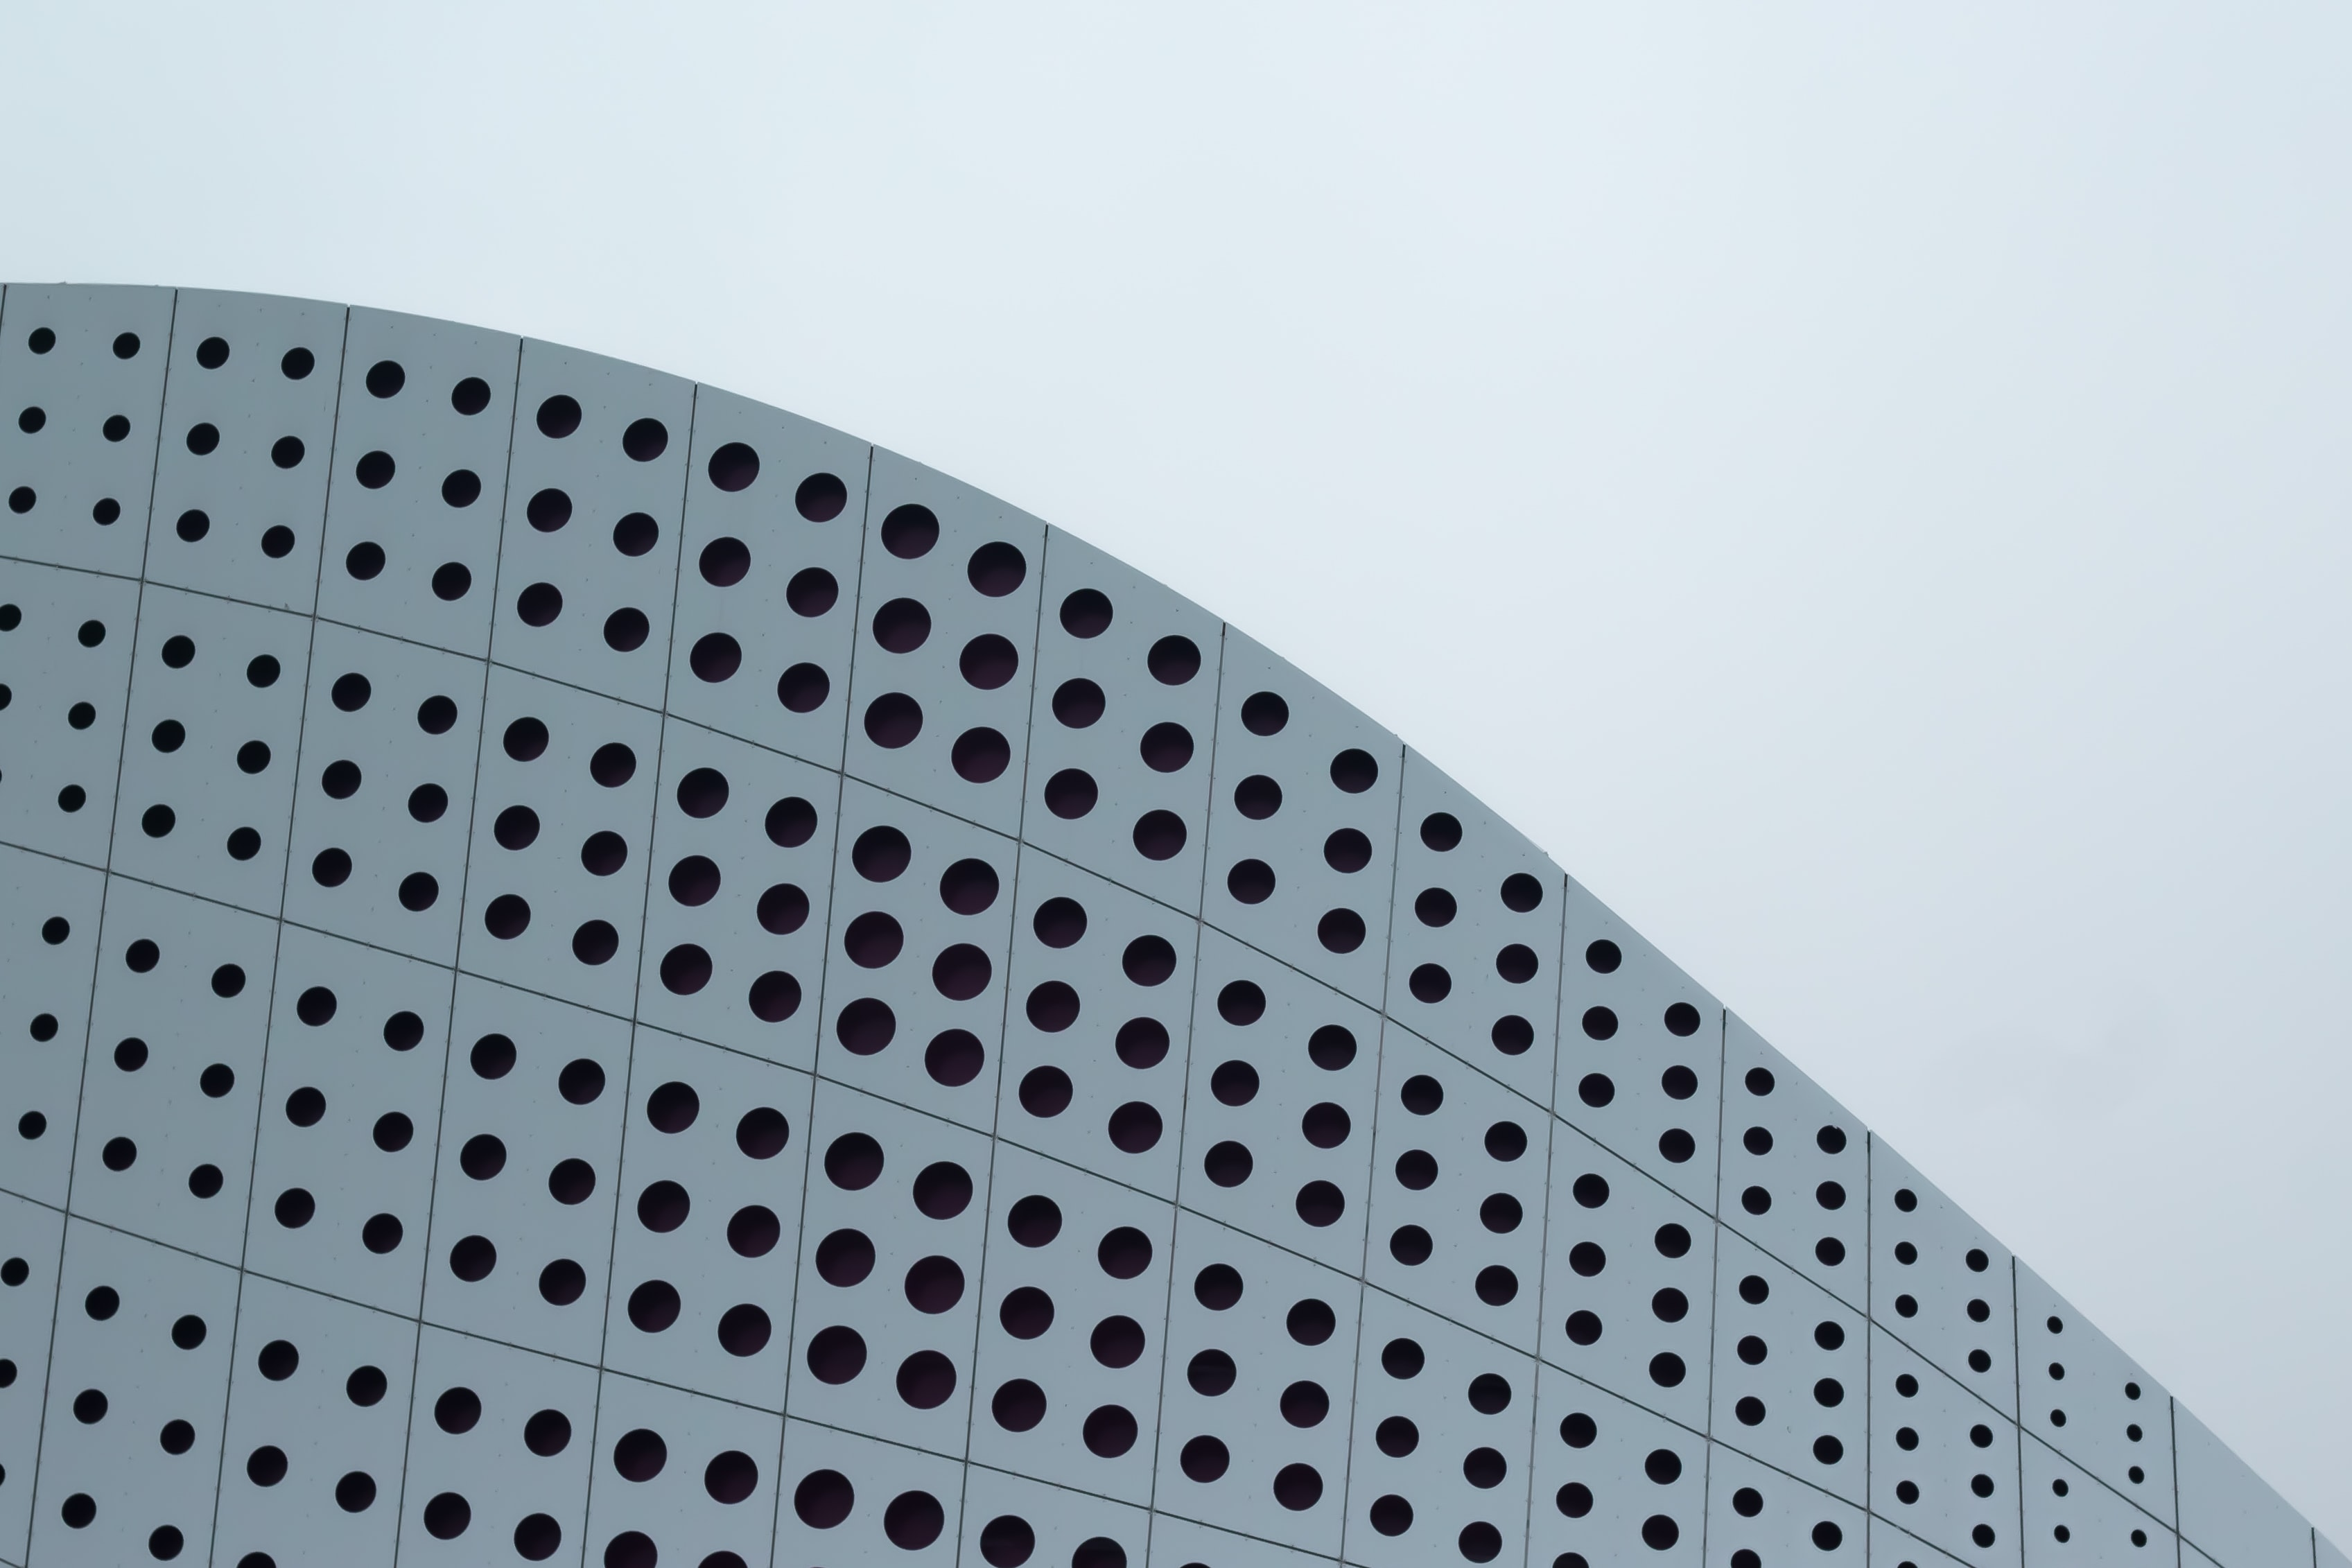 A dotted pattern on a white curved facade